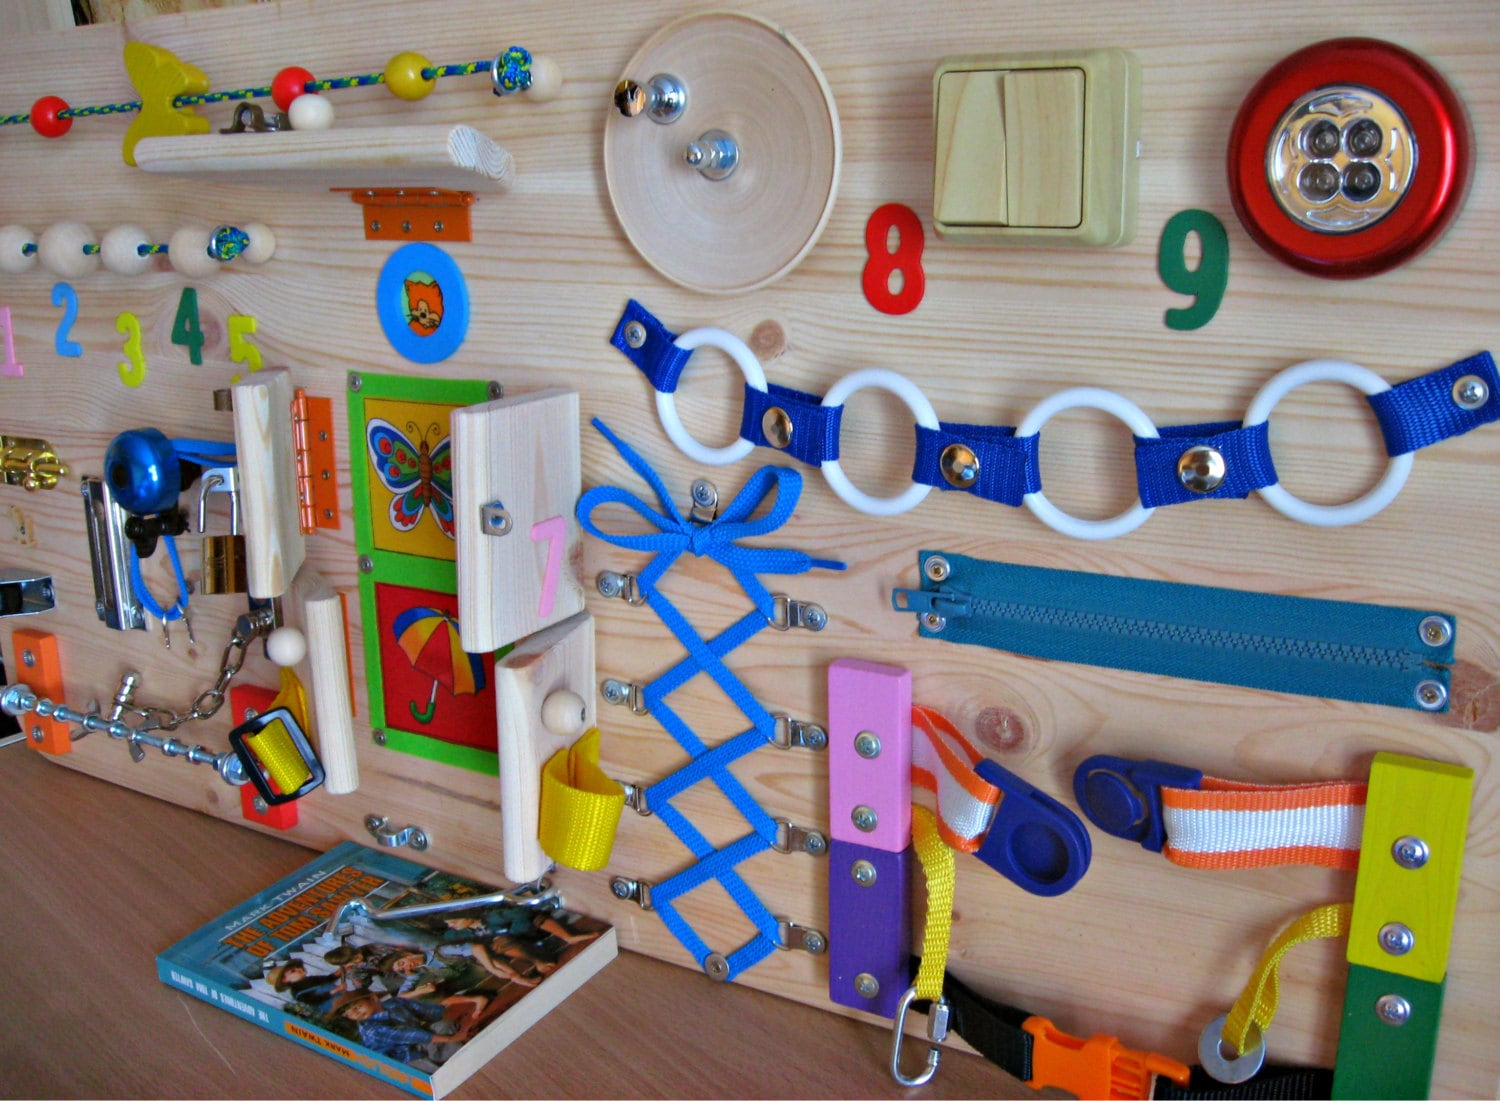 Toys For Activity : Busy board childrens activity toy sensory game wooden